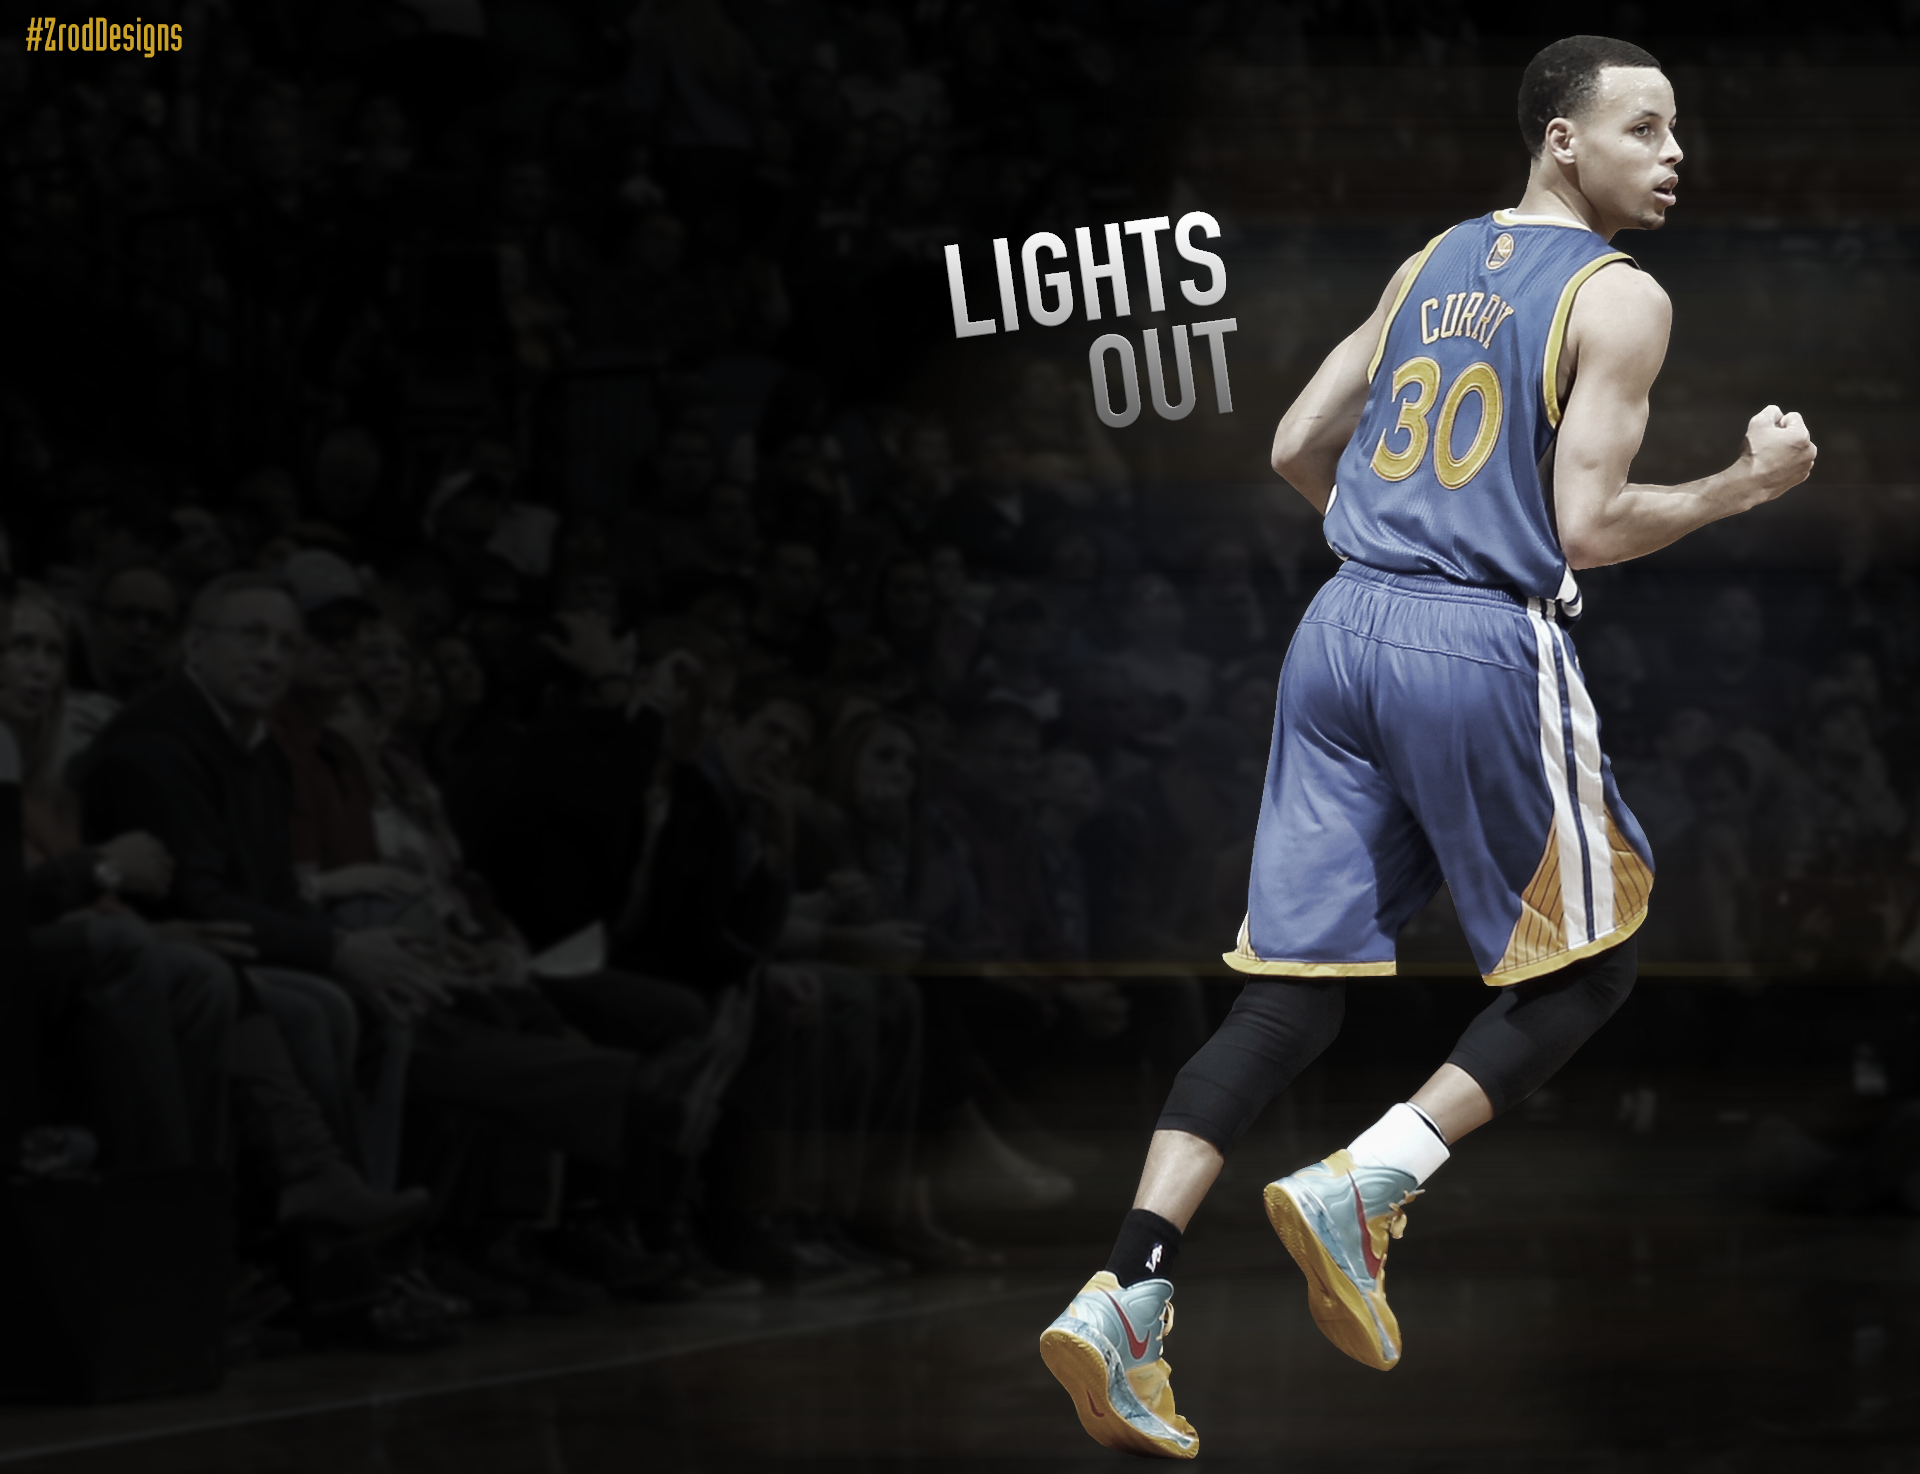 Stephen Curry Lights Out Wallpaper